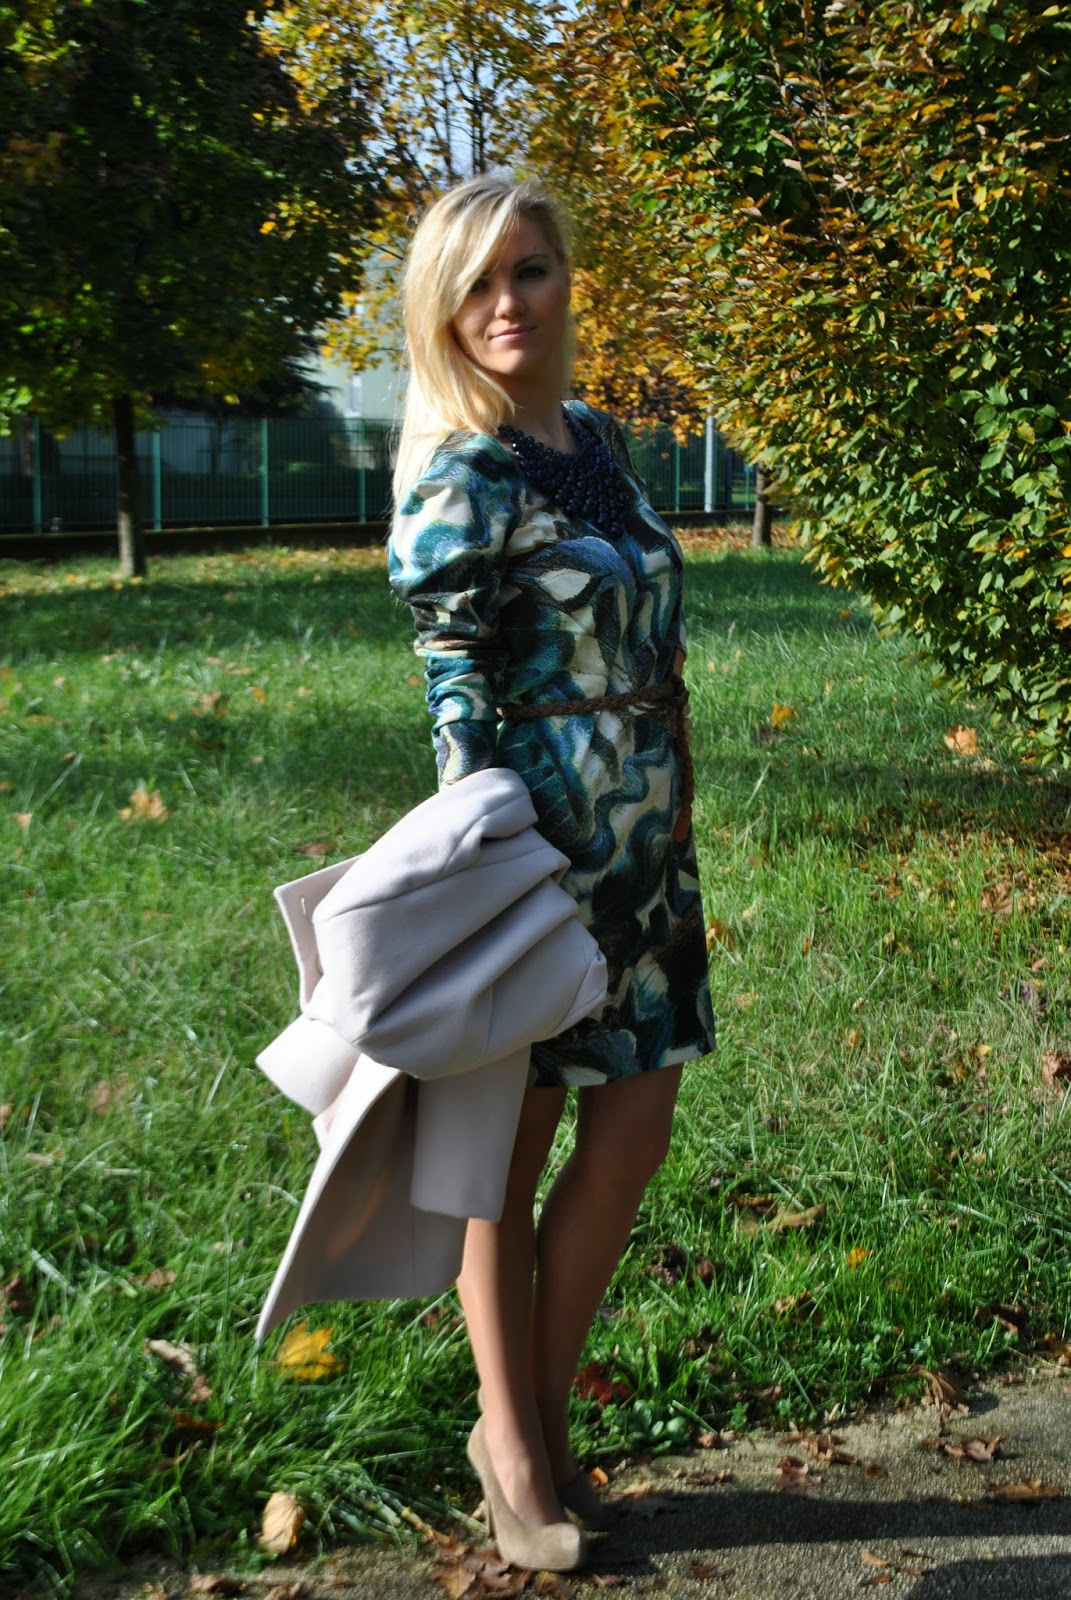 outfit abito in neoprene stampato outfit abito verde blu e beige cintura in vita décolleté beige benetton borsa blu cocco stefanel collana blu majique majique london necklace printed dress cintura in vita outfit autunnali outfit novembre 2014 outfit mariafelicia magno mariafelicia magno fashion blogger fashion blog italiani colorblock by felym autumnal outfits printed dress fashion bloggers italy italian girls blonde girls ragazze bionde fashion blogger bionde italian girls fashion bloggers italy